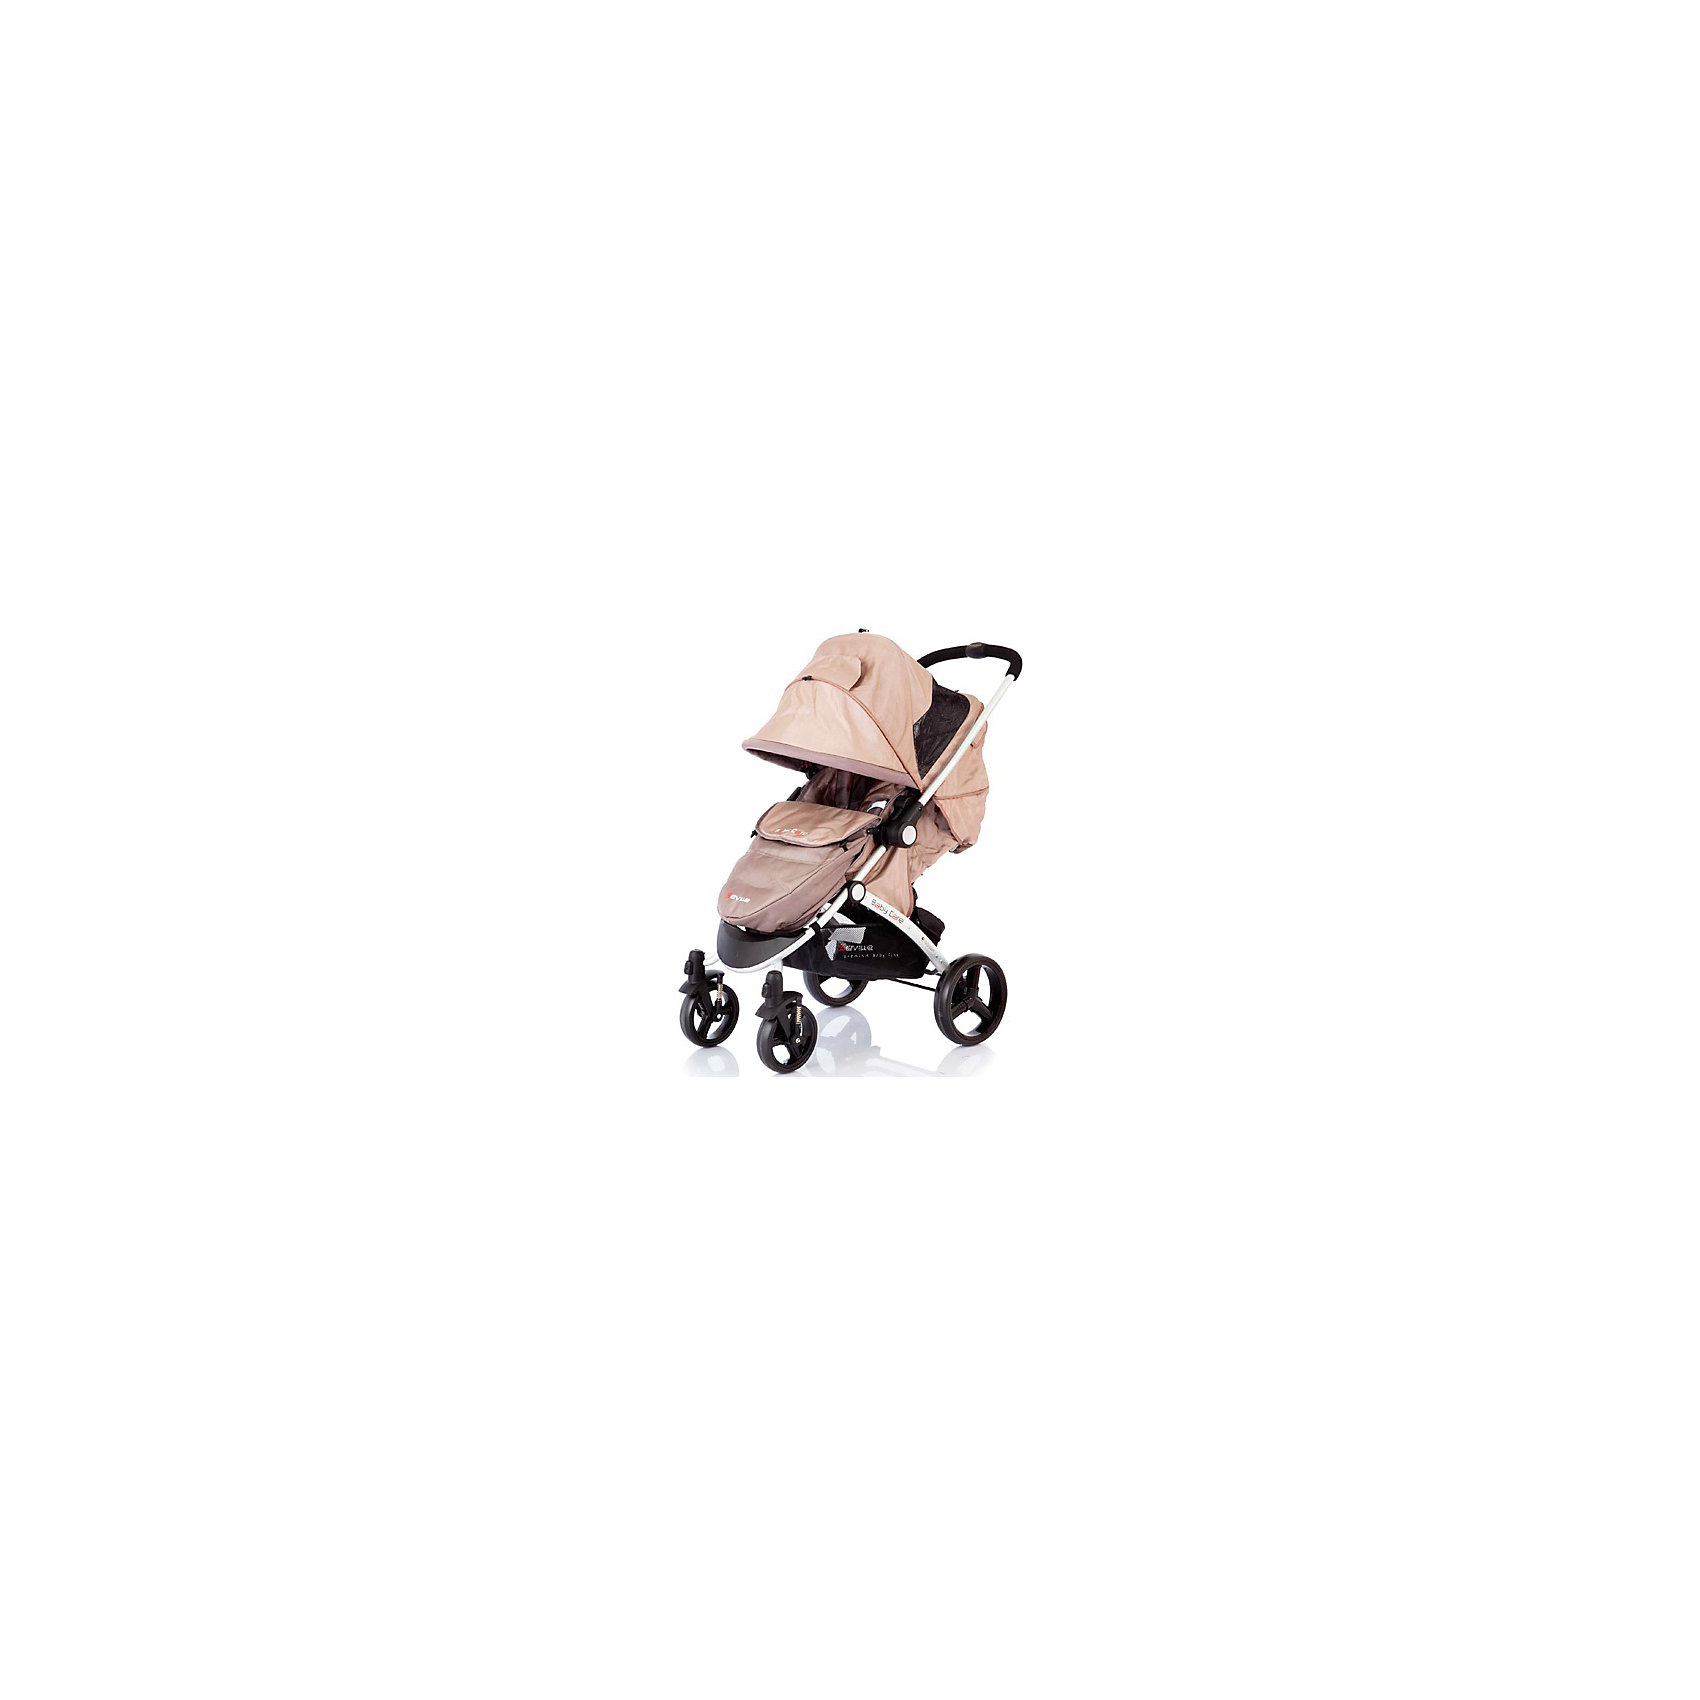 Baby Care Прогулочная коляска Seville, Baby Care, Beige/Kaki baby care прогулочная коляска seville baby care grey blue